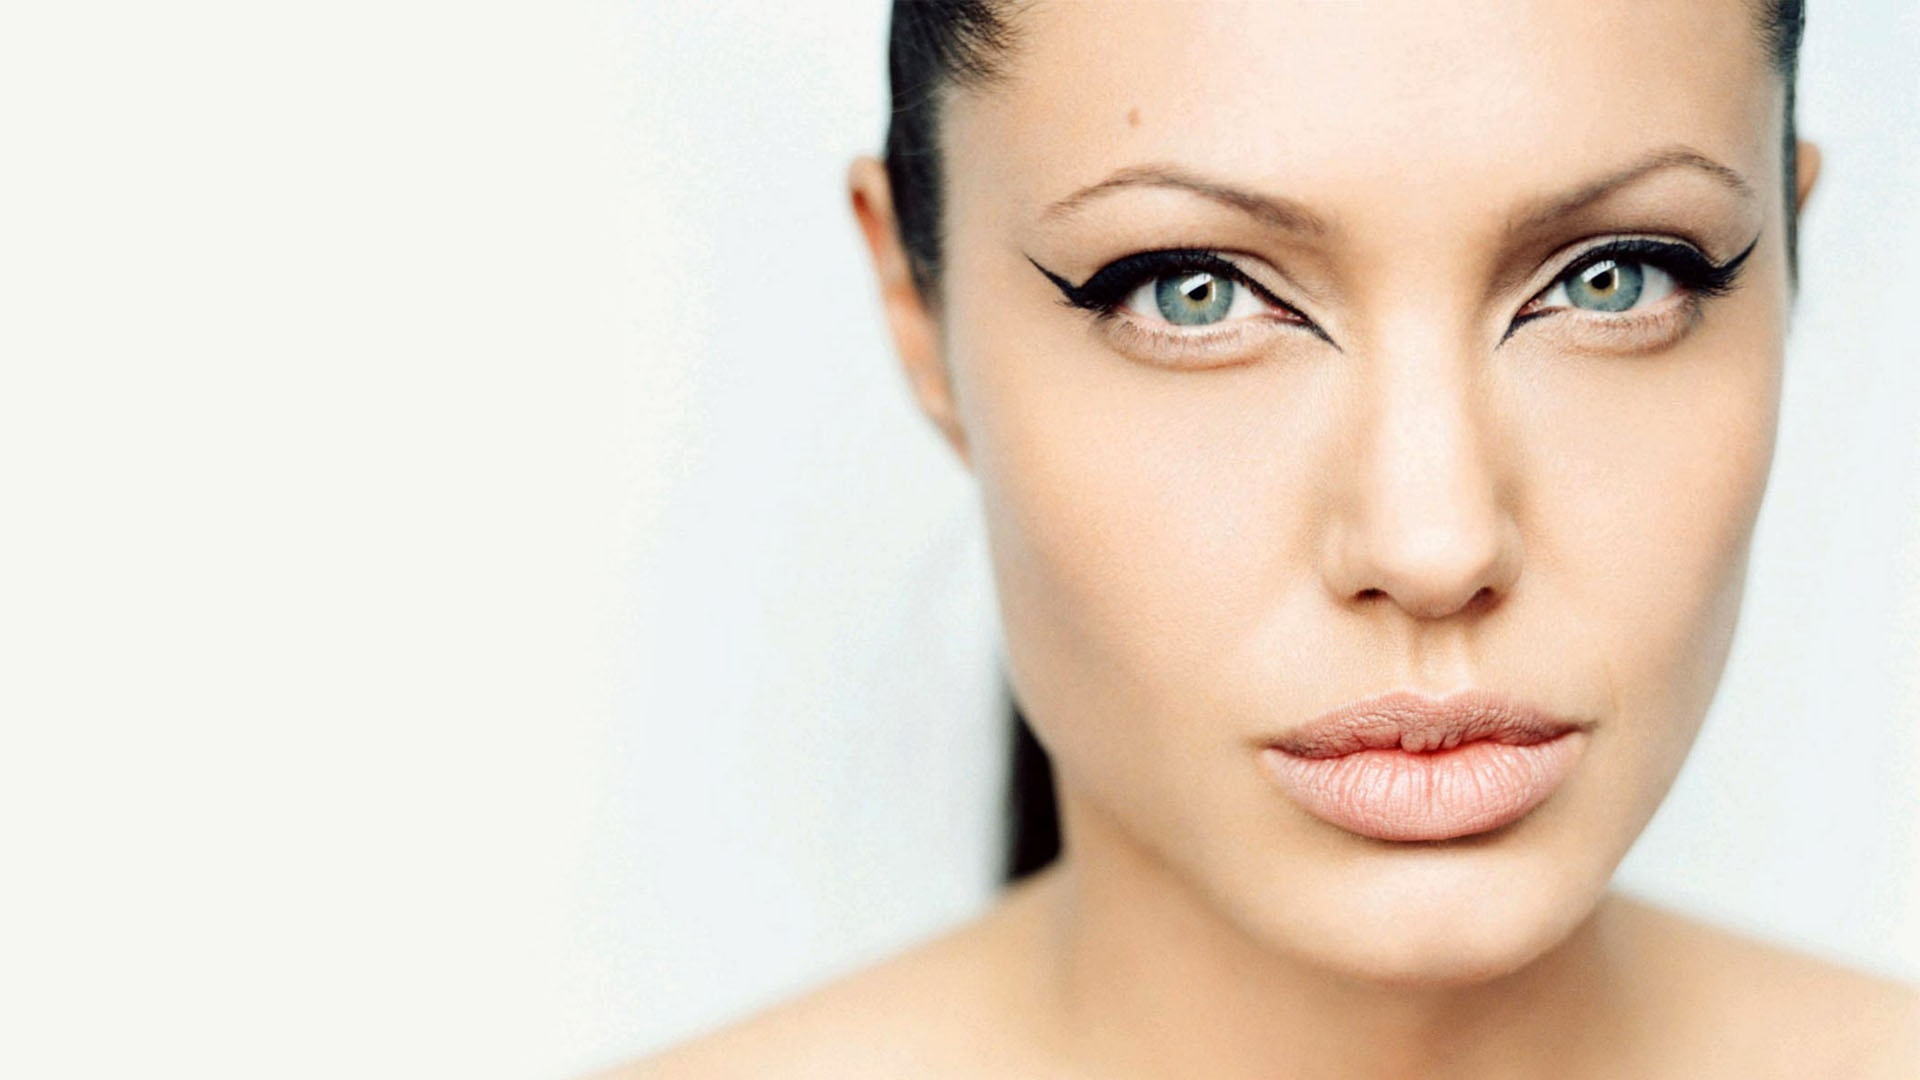 HQ Angelina Jolie Eye Makeup 1920x1080 Wallpaper   HQ Wallpapers 1920x1080